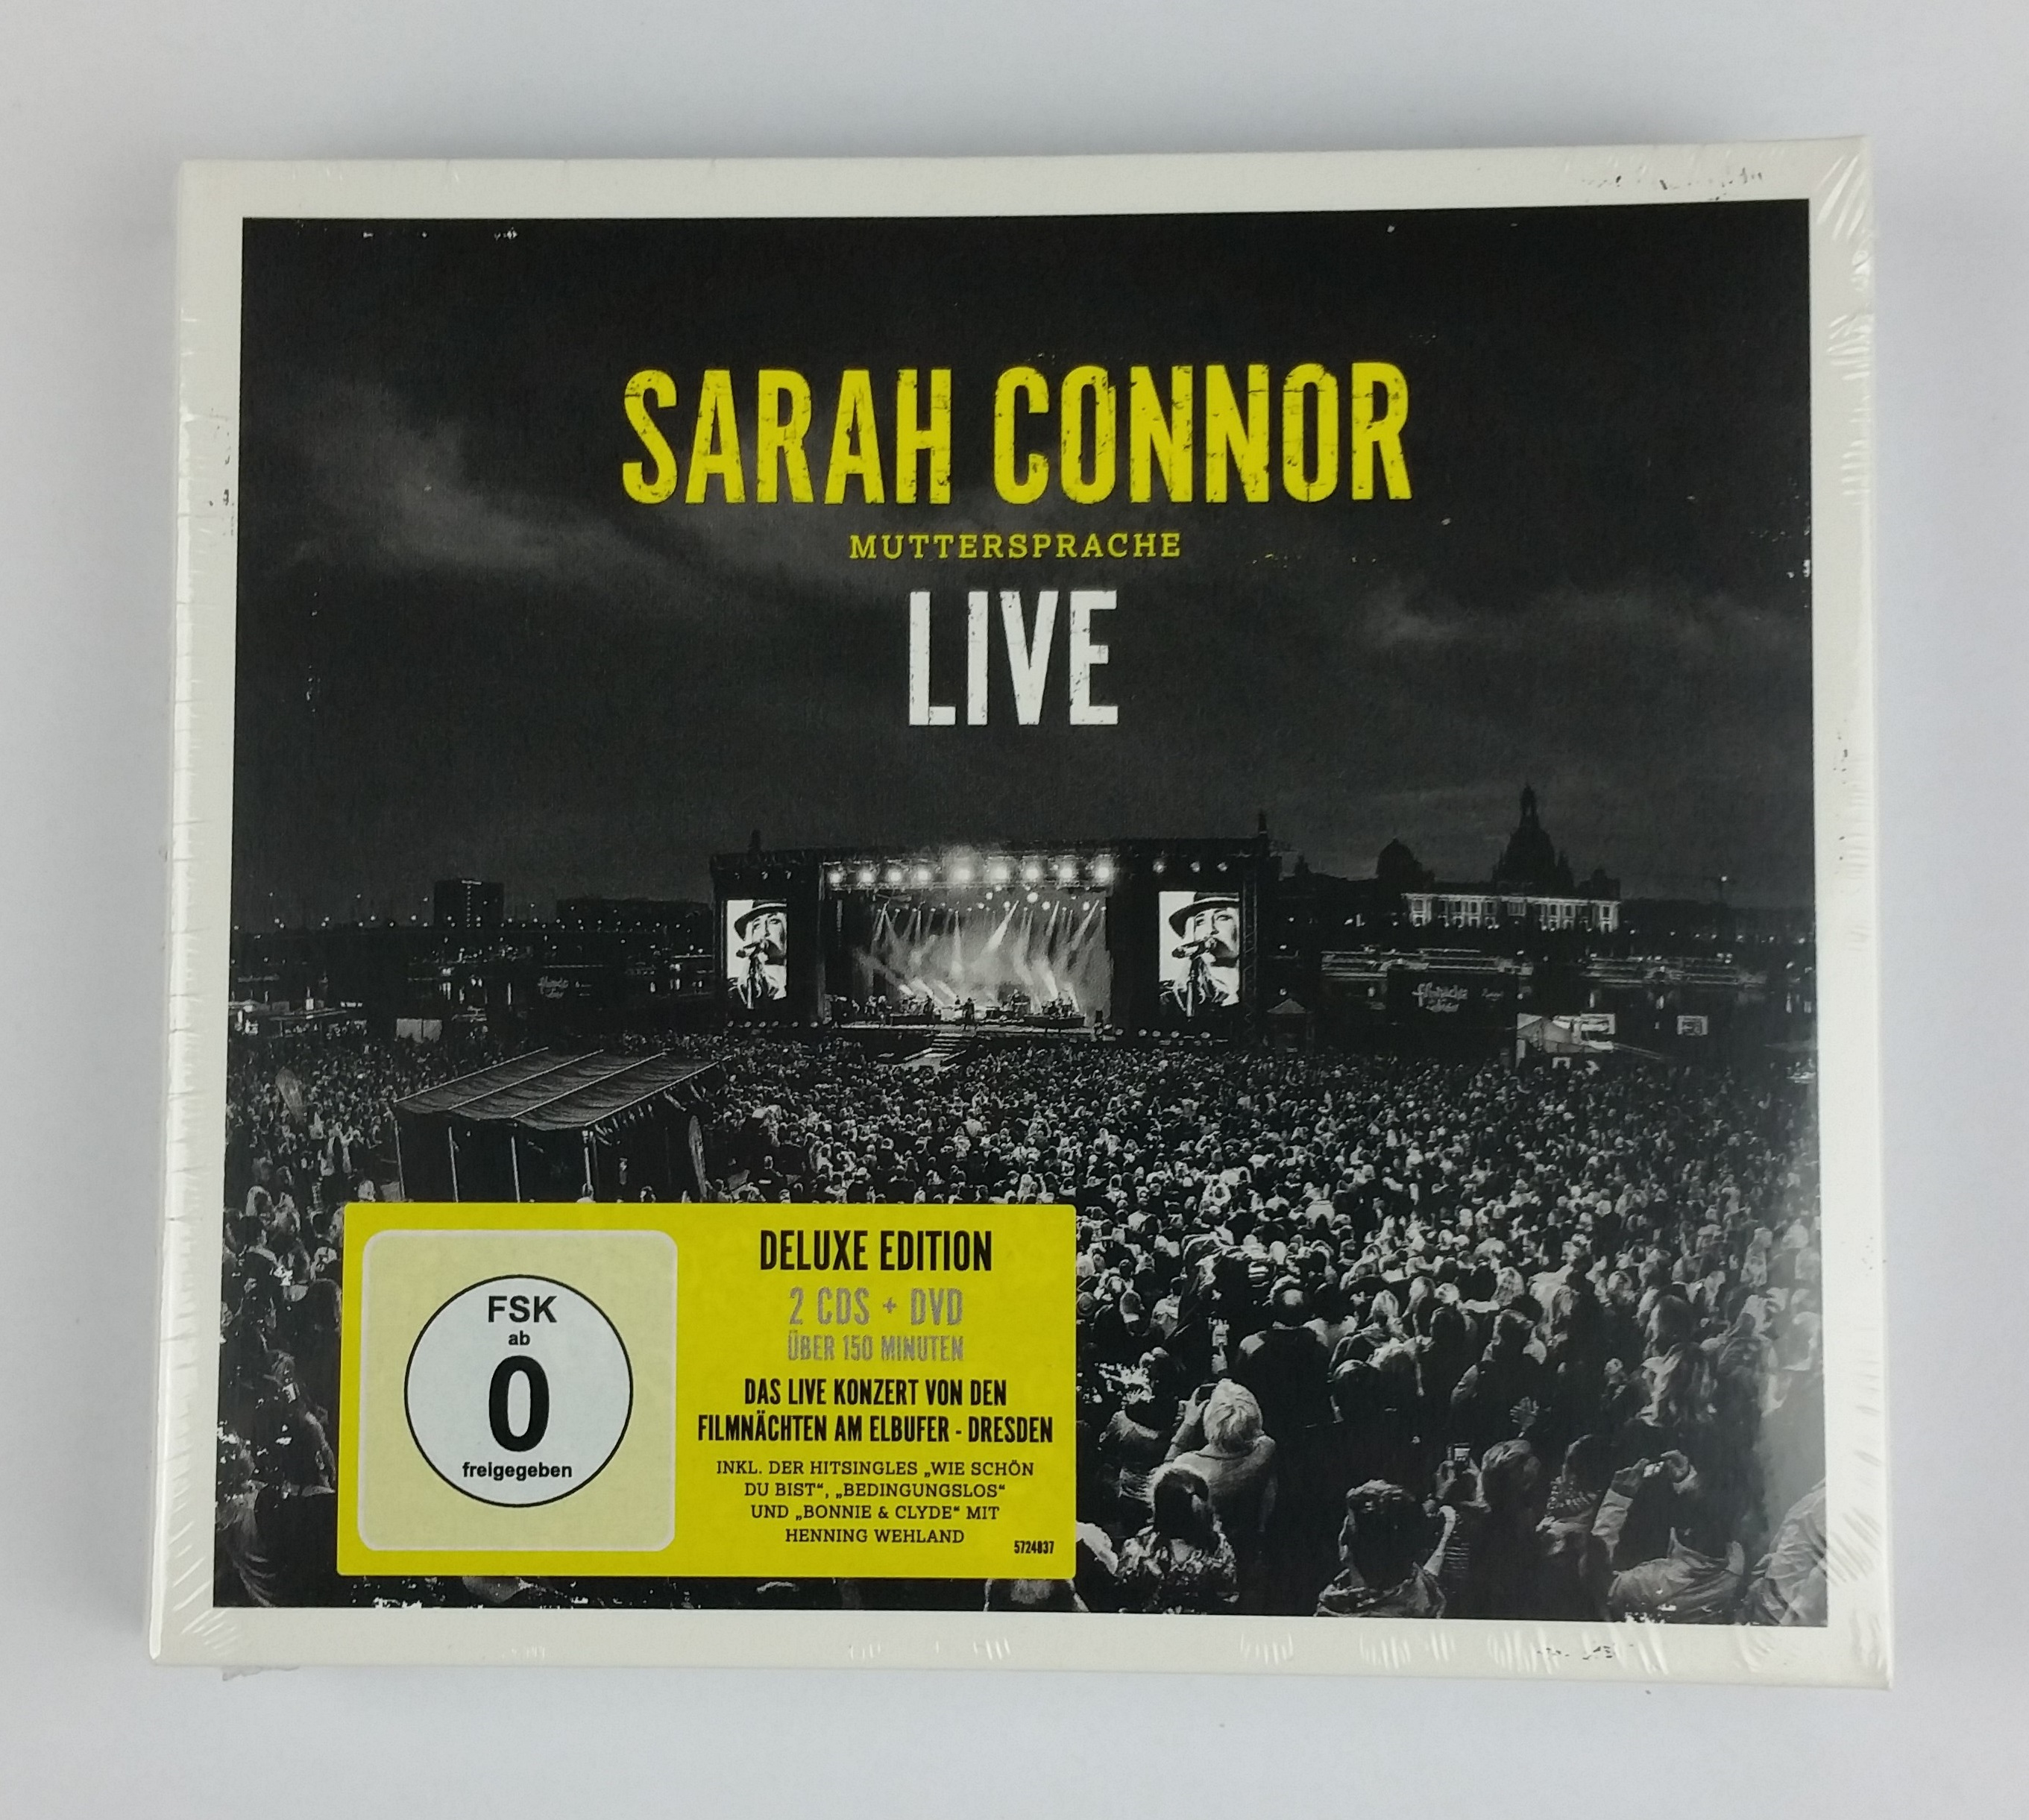 Muttersprache  Live 2CD  DVD Deluxe Edition